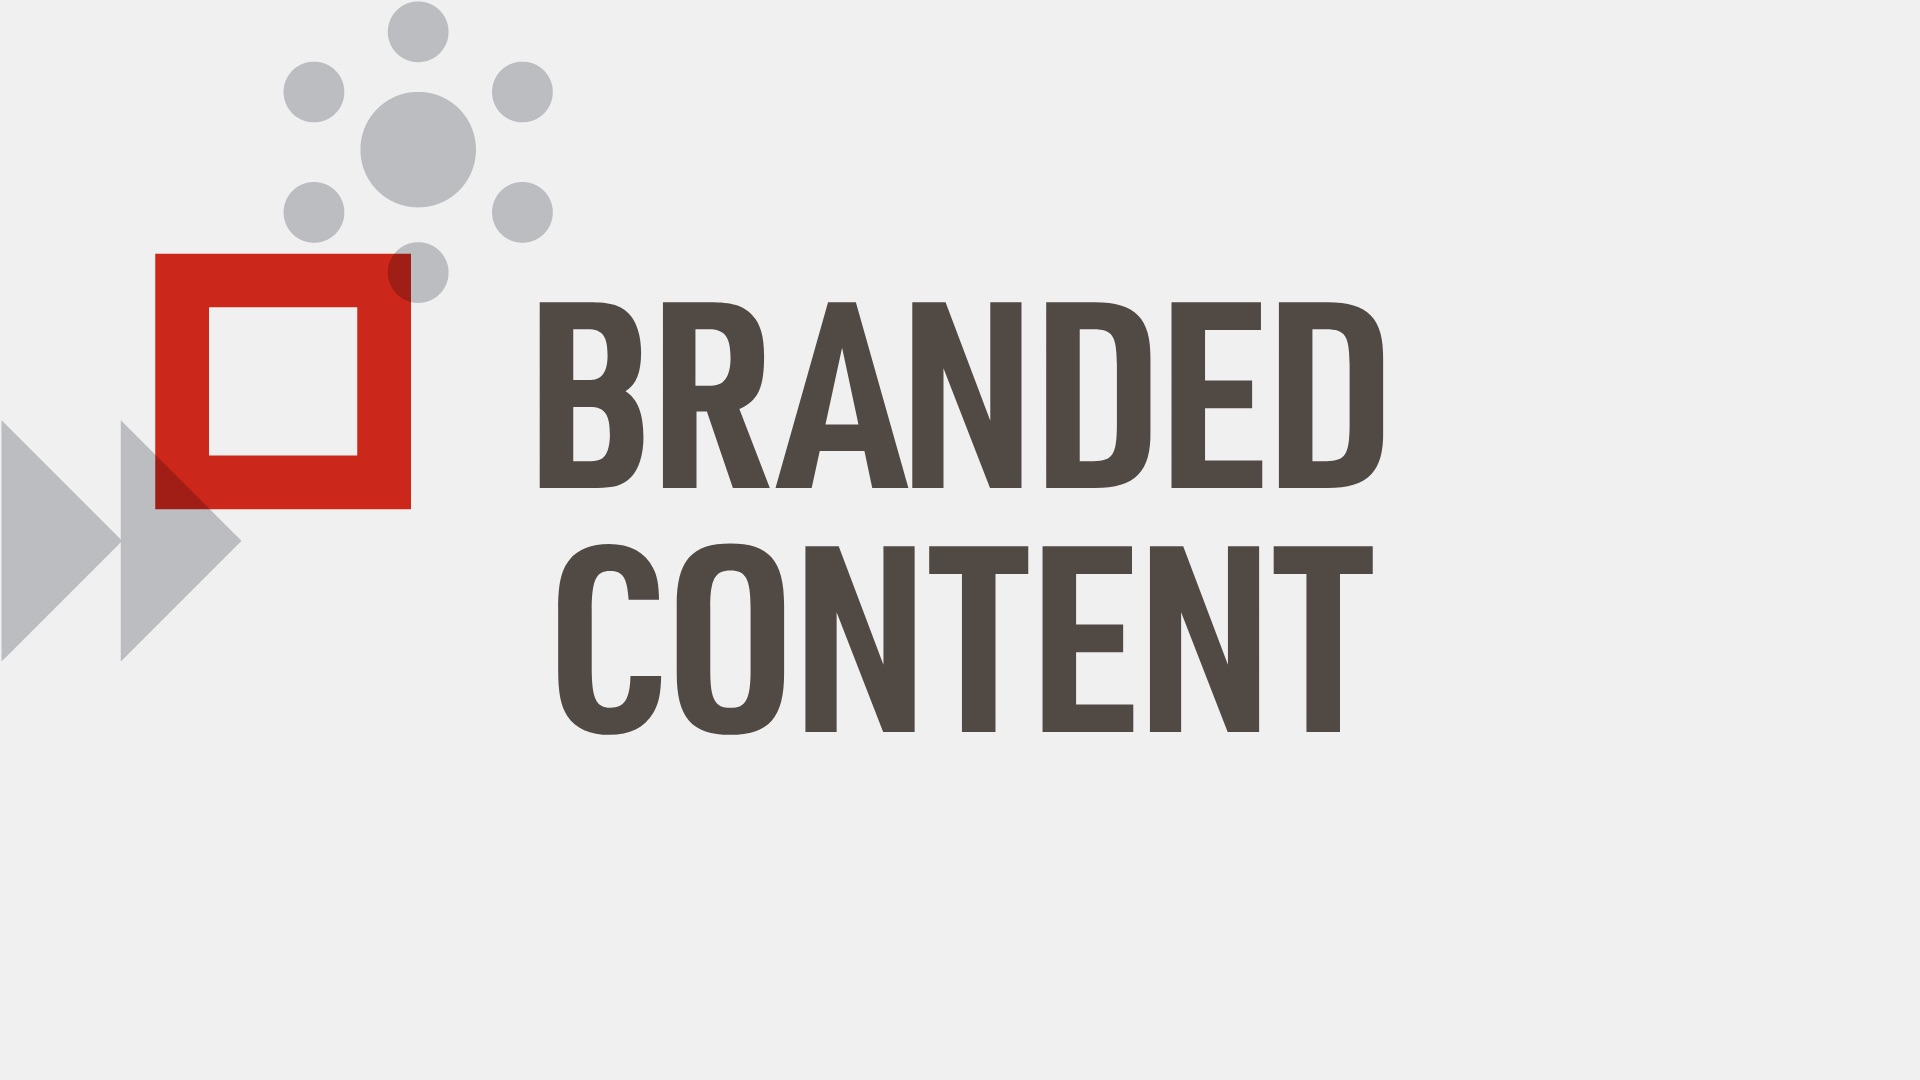 Creative Solutions - Branded Content